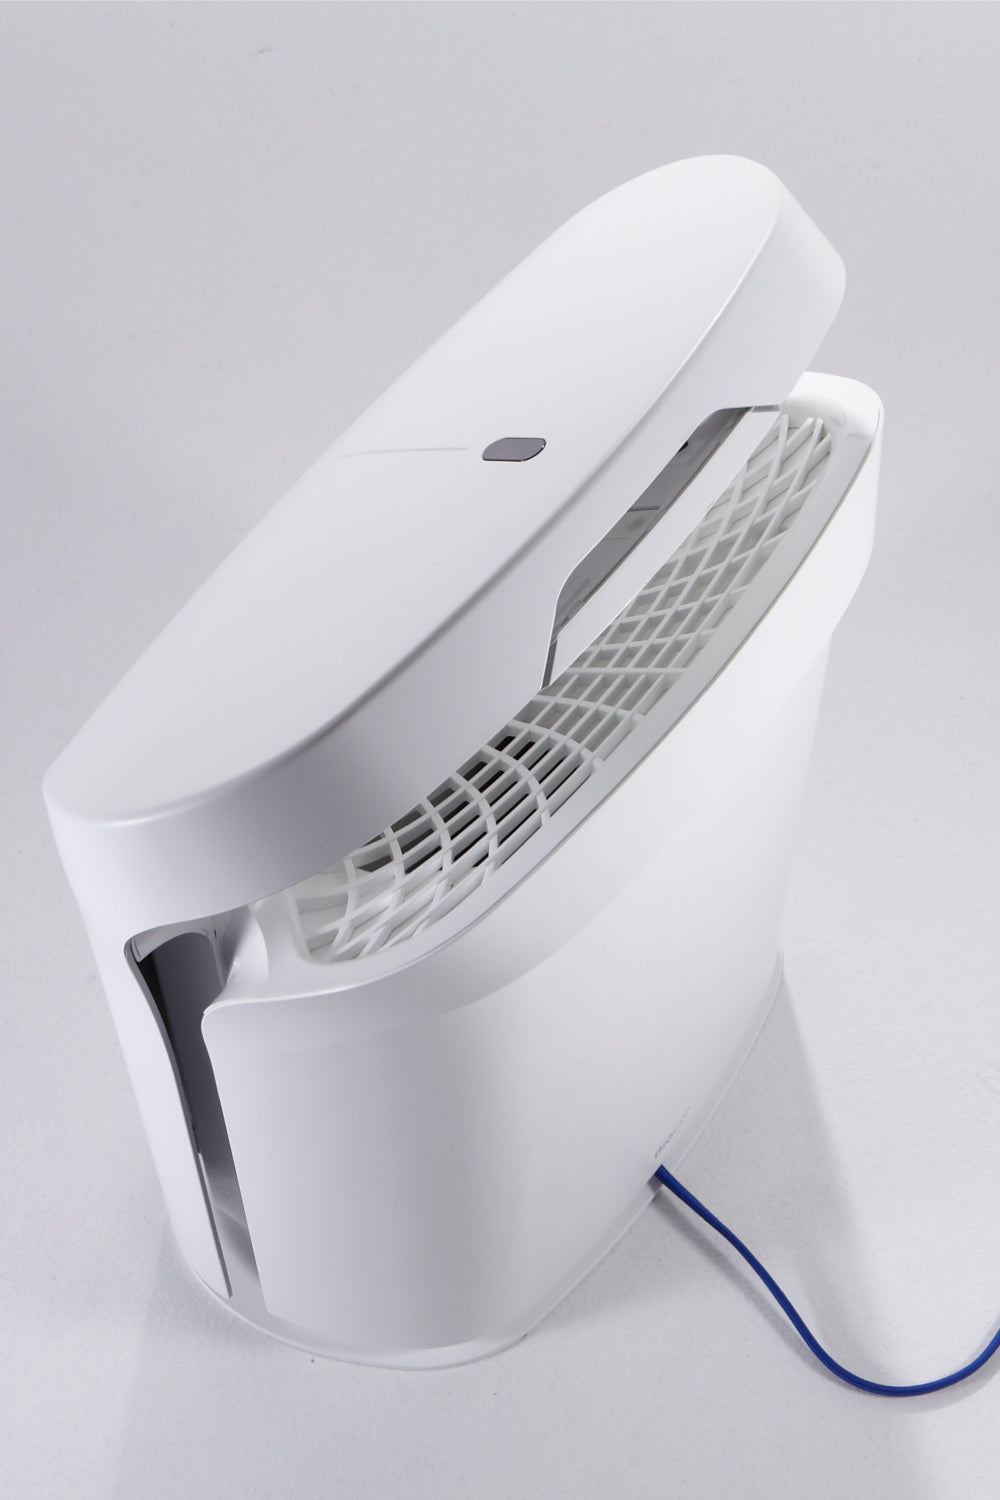 Top view of the BioGS 2.0 air purifier